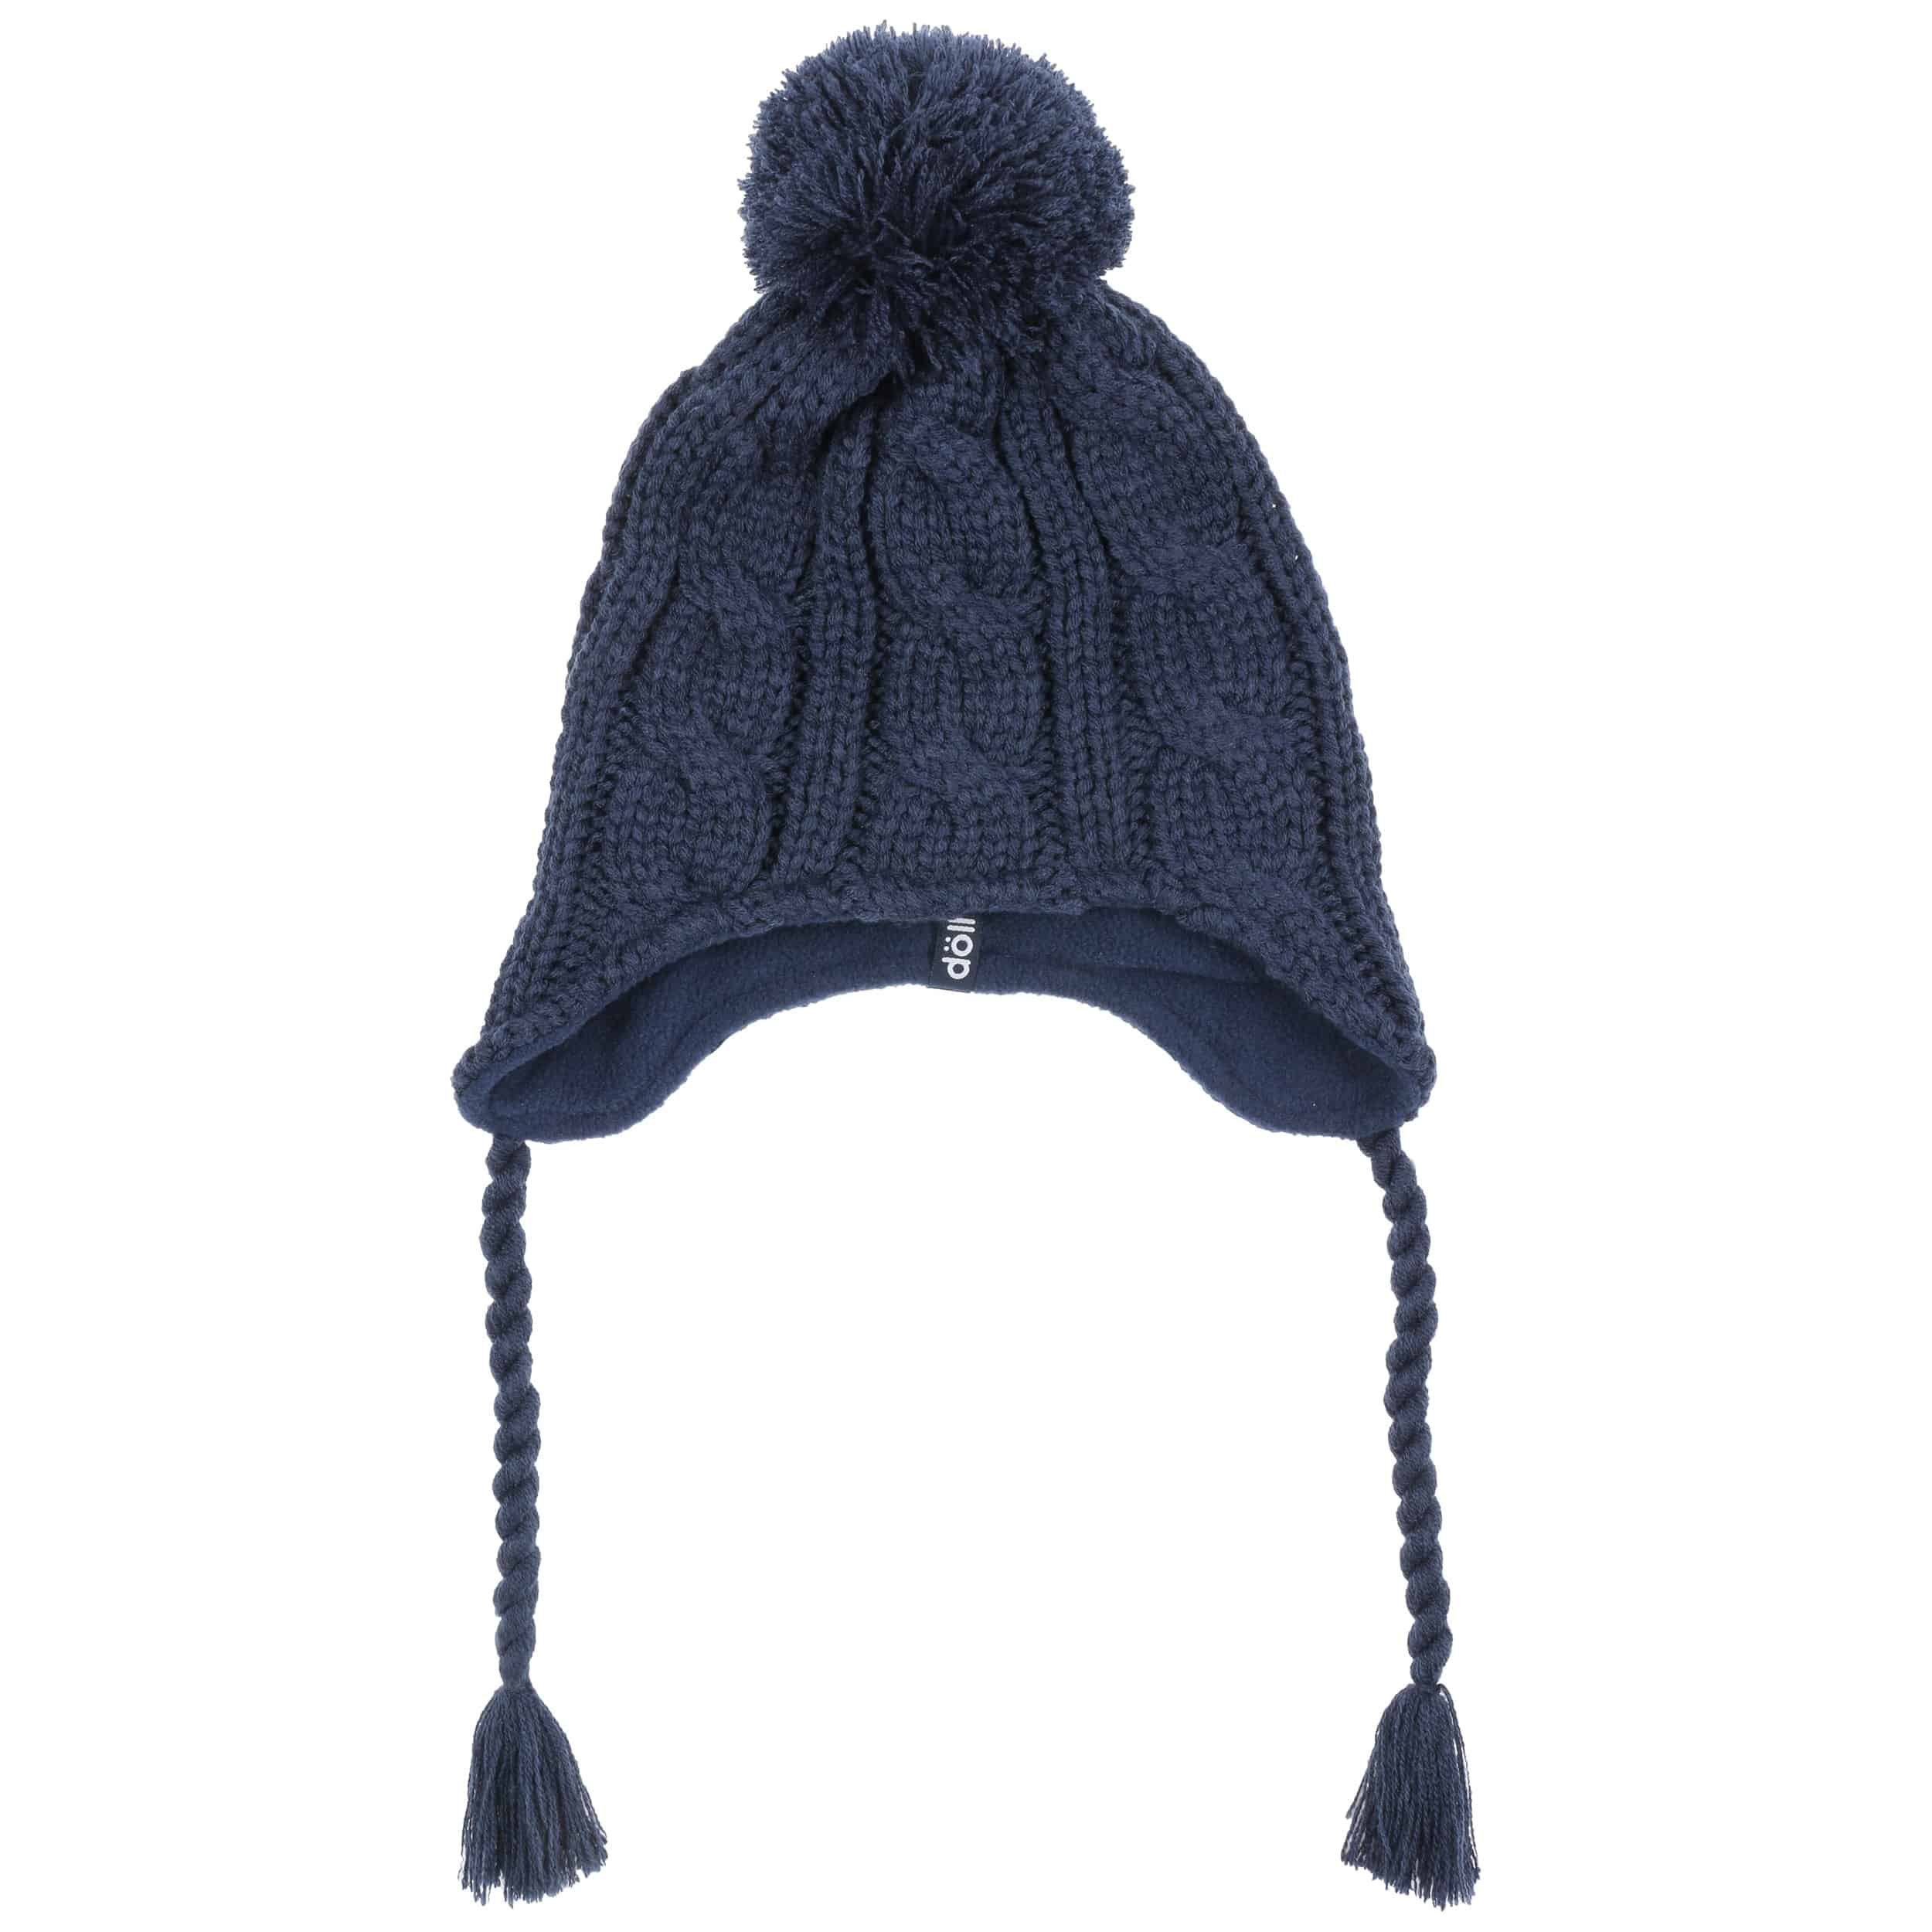 7cb00e2ca05 ... Peruvian Cable Knit Hat by Döll - navy 1 ...